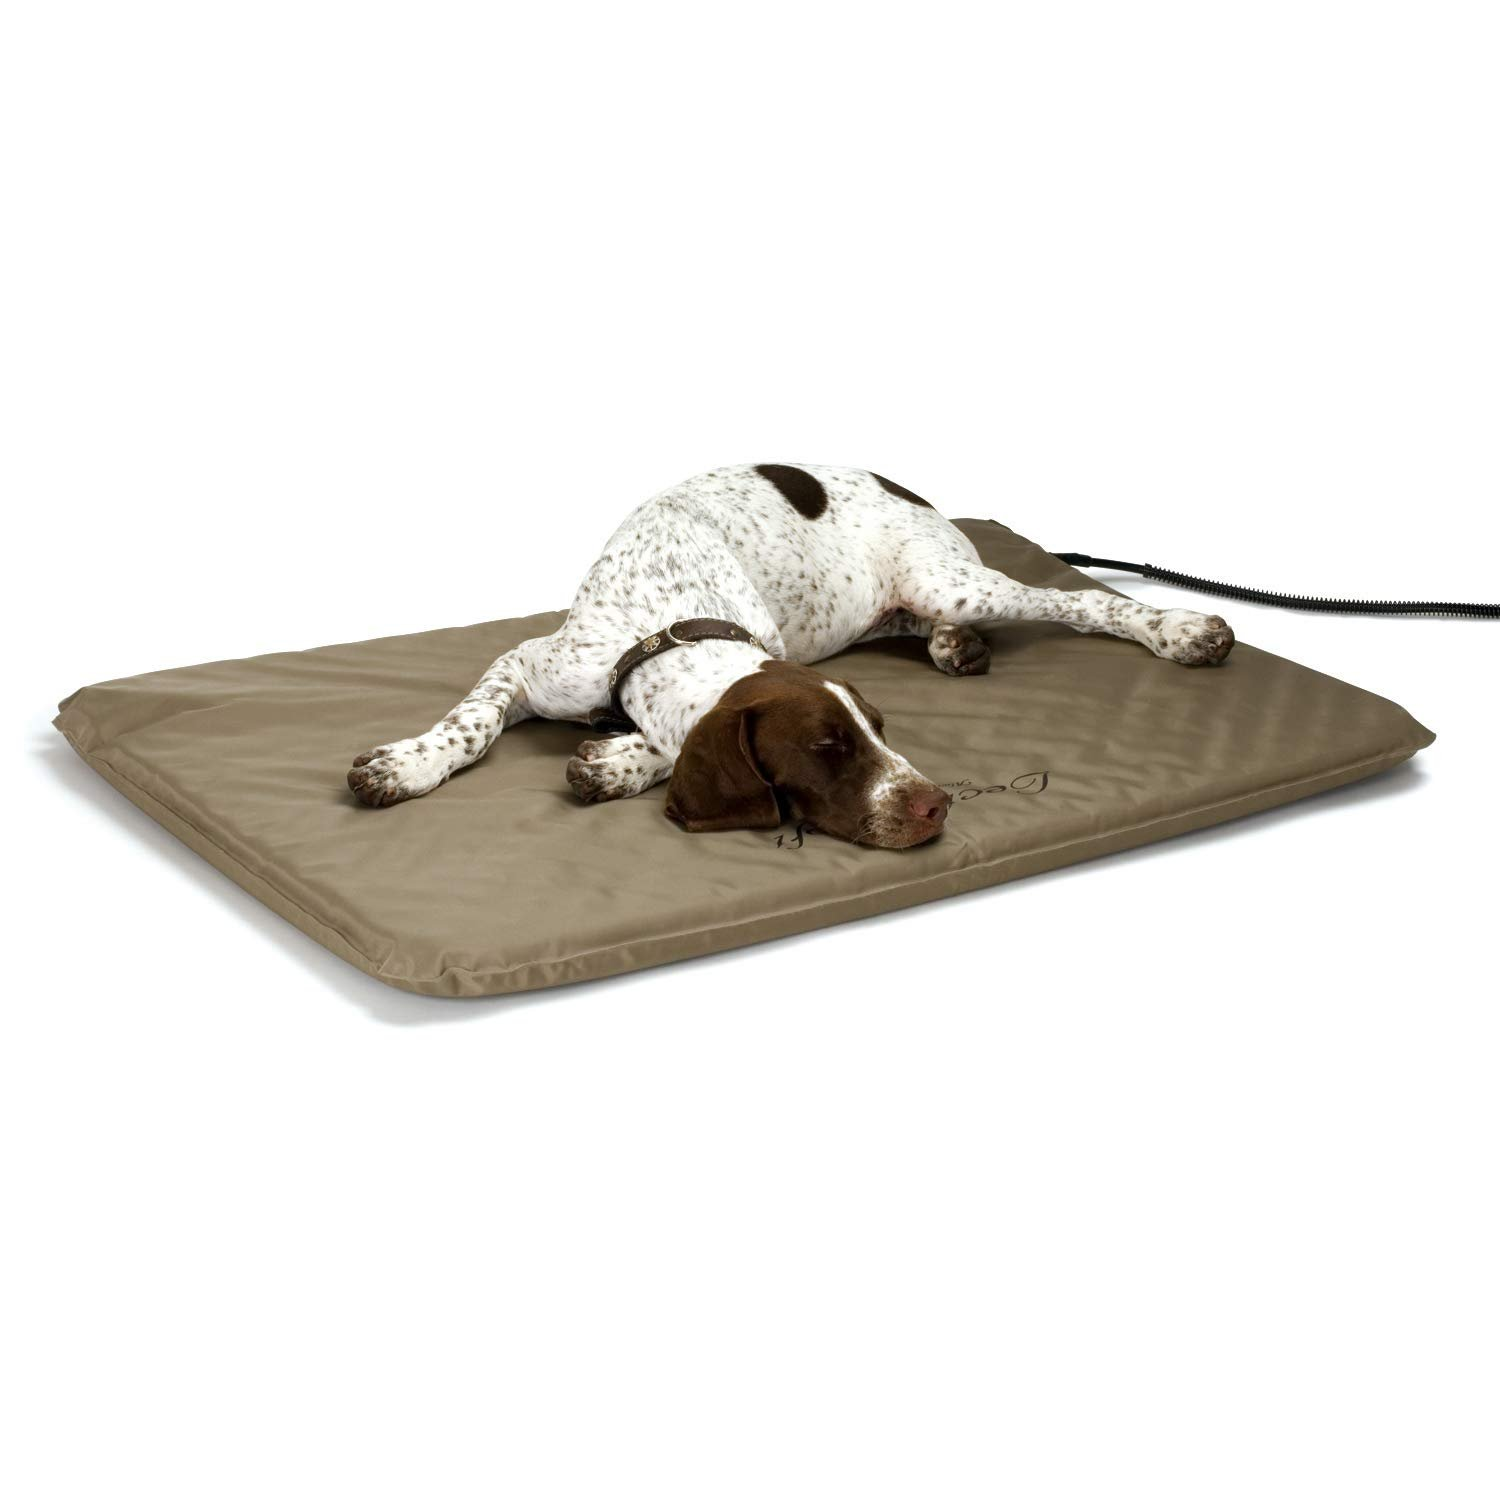 K&H Pet products - Met safe